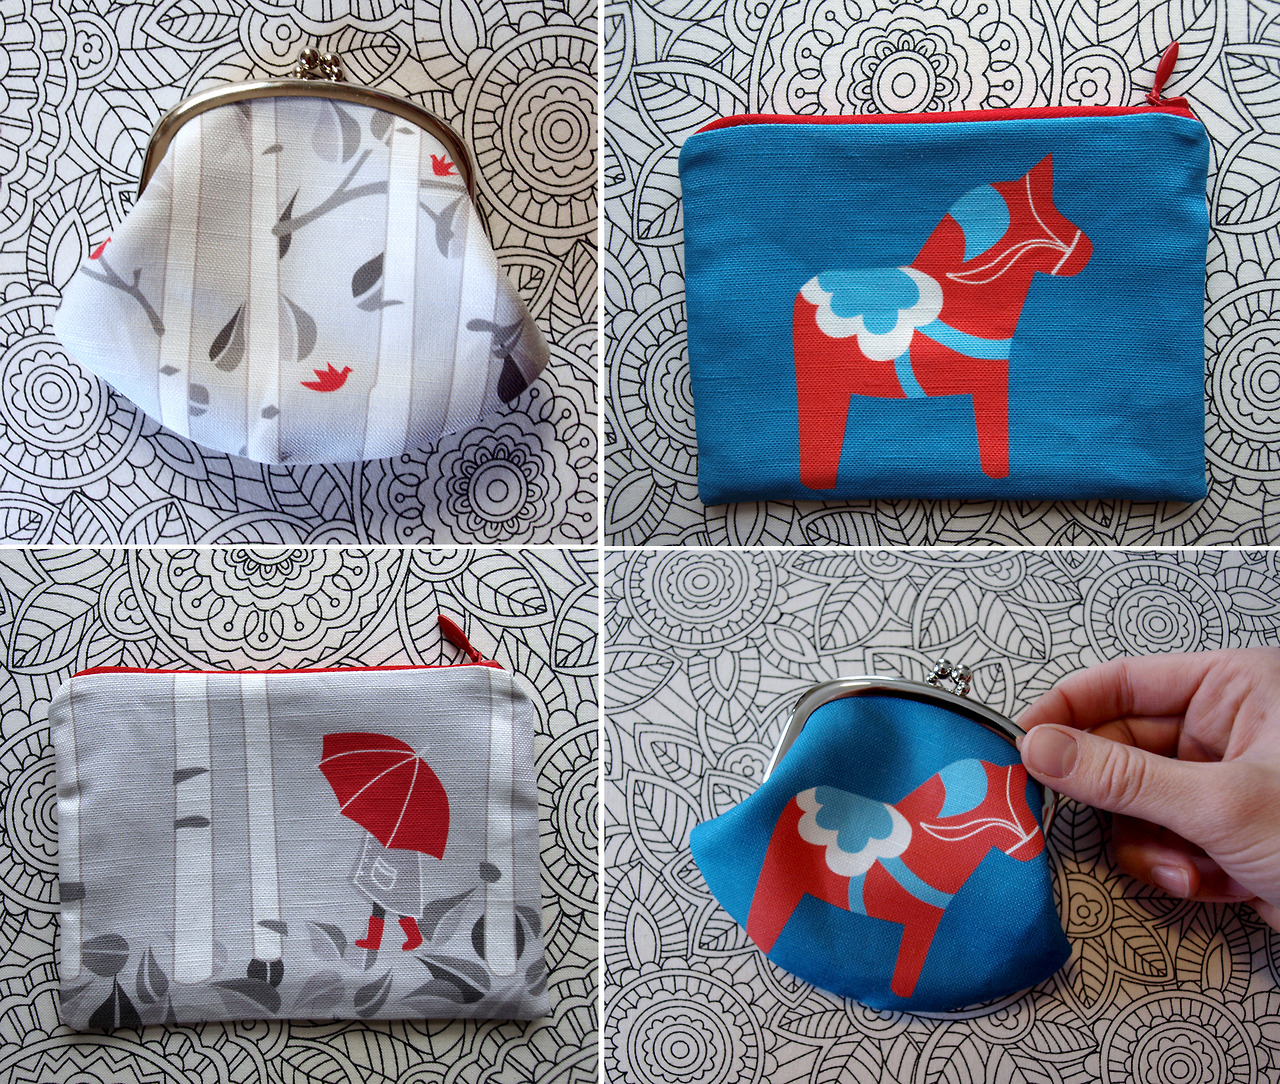 Coin purses now available in the two different styles. Casual or cute, it's up to you.